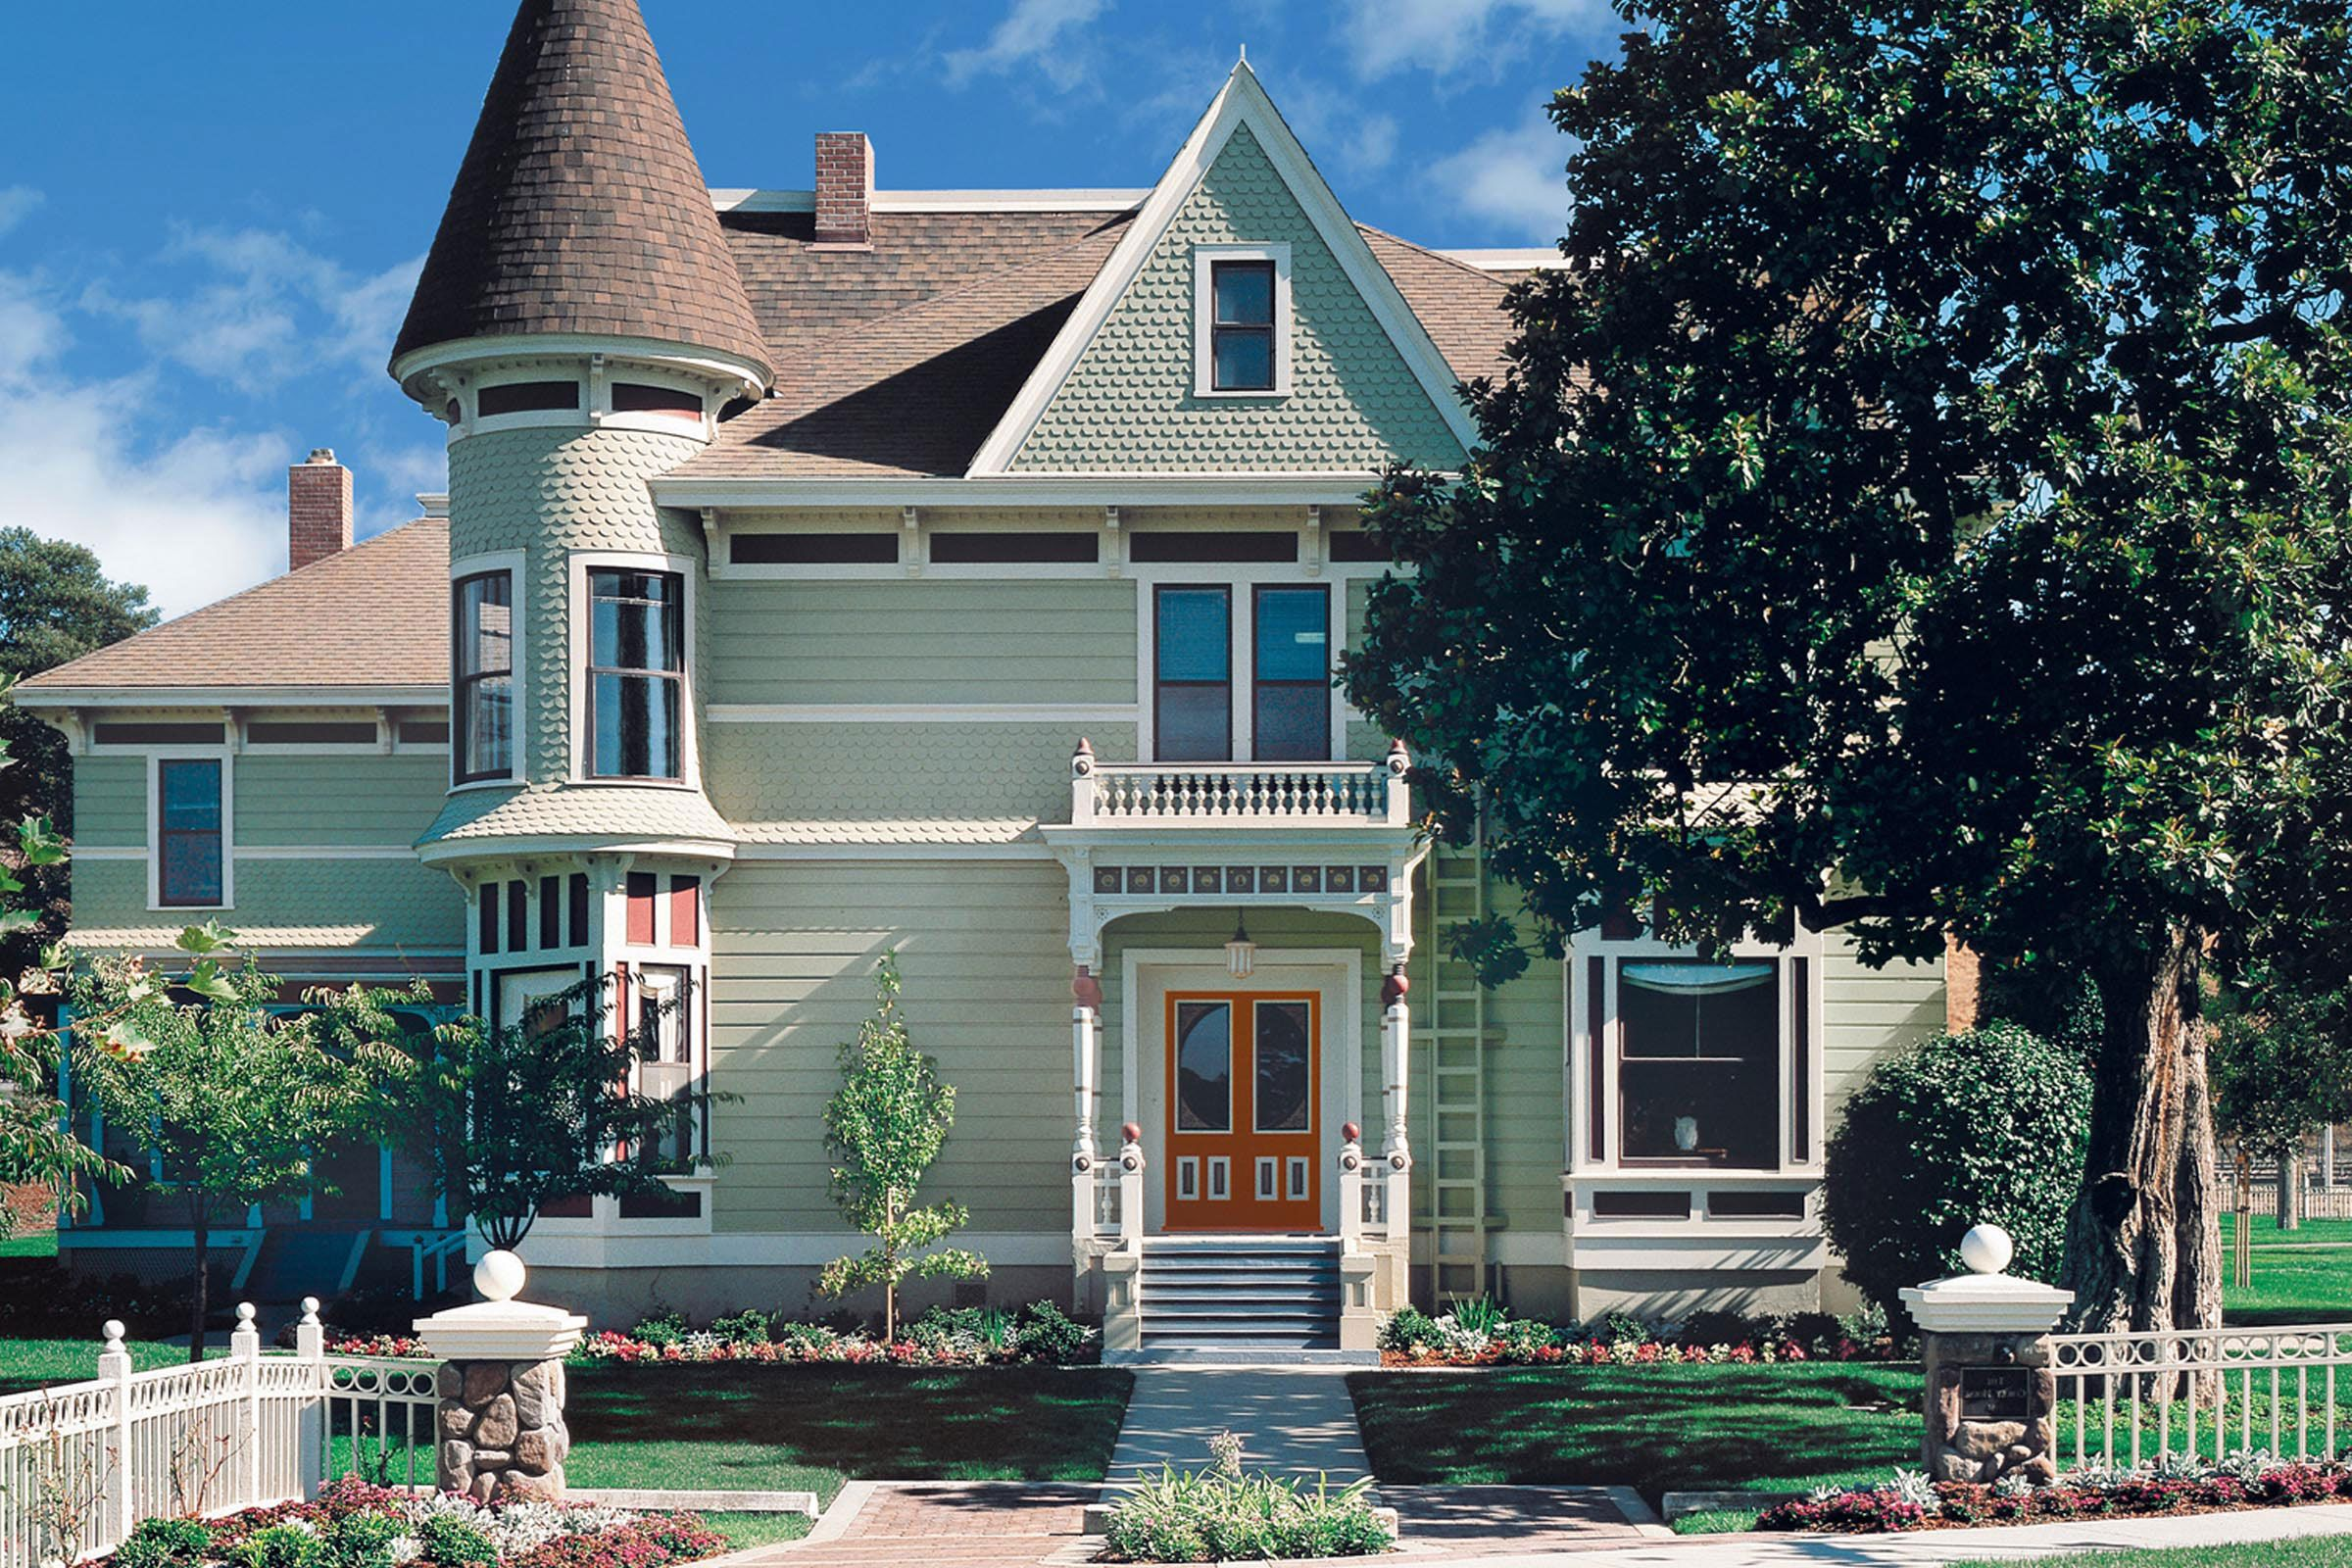 Exterior paint schemes for brown roofs - Pittsburgh Paints Exterior Paints Olive Sprig